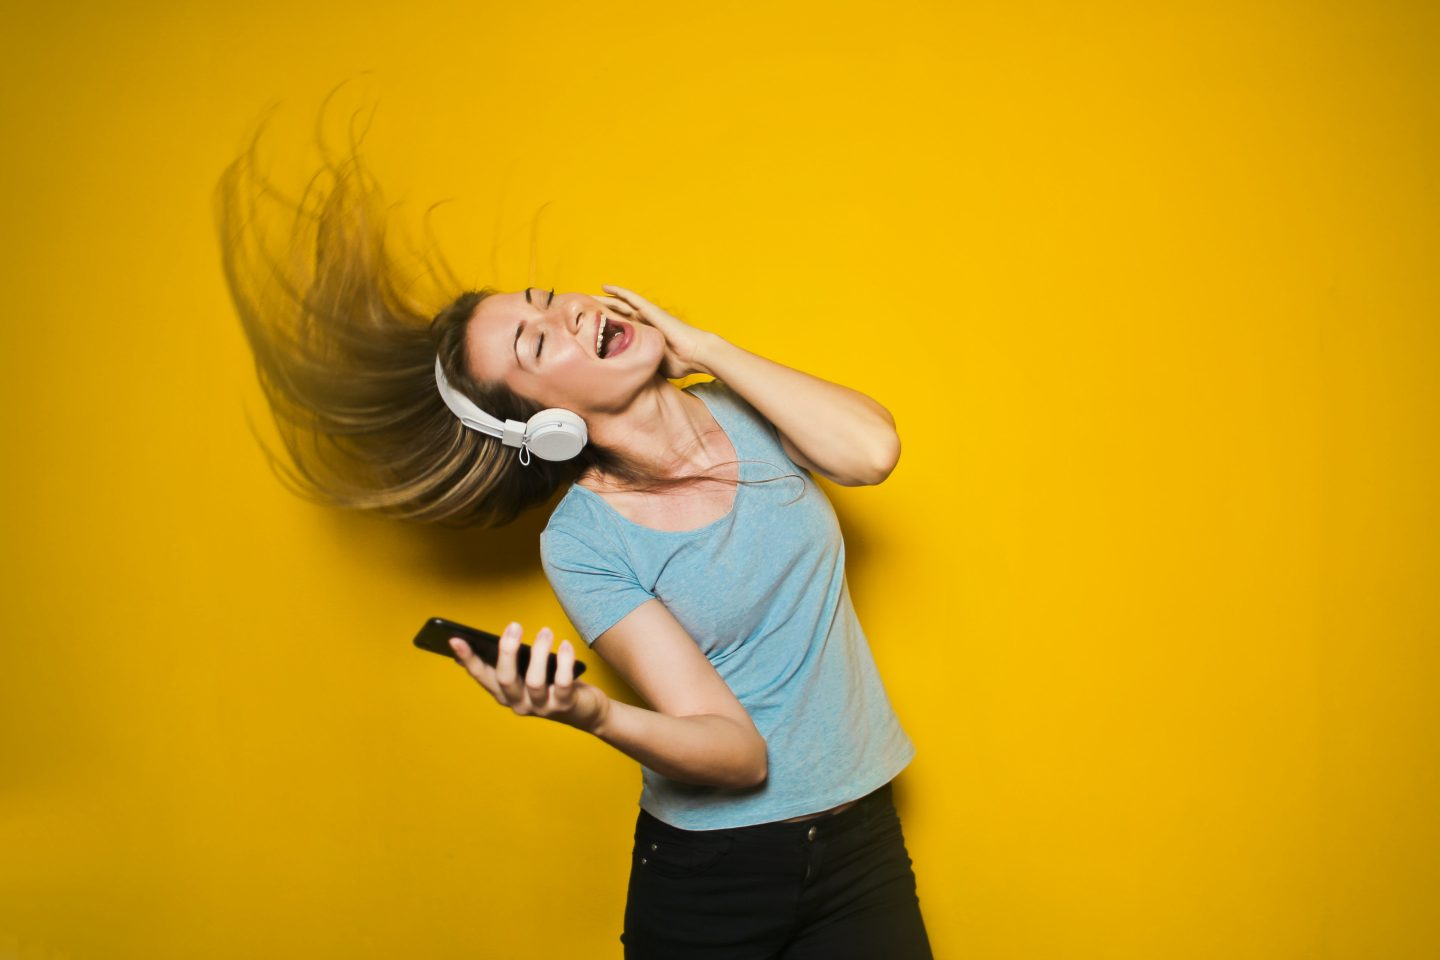 Woman having fun singing along to music